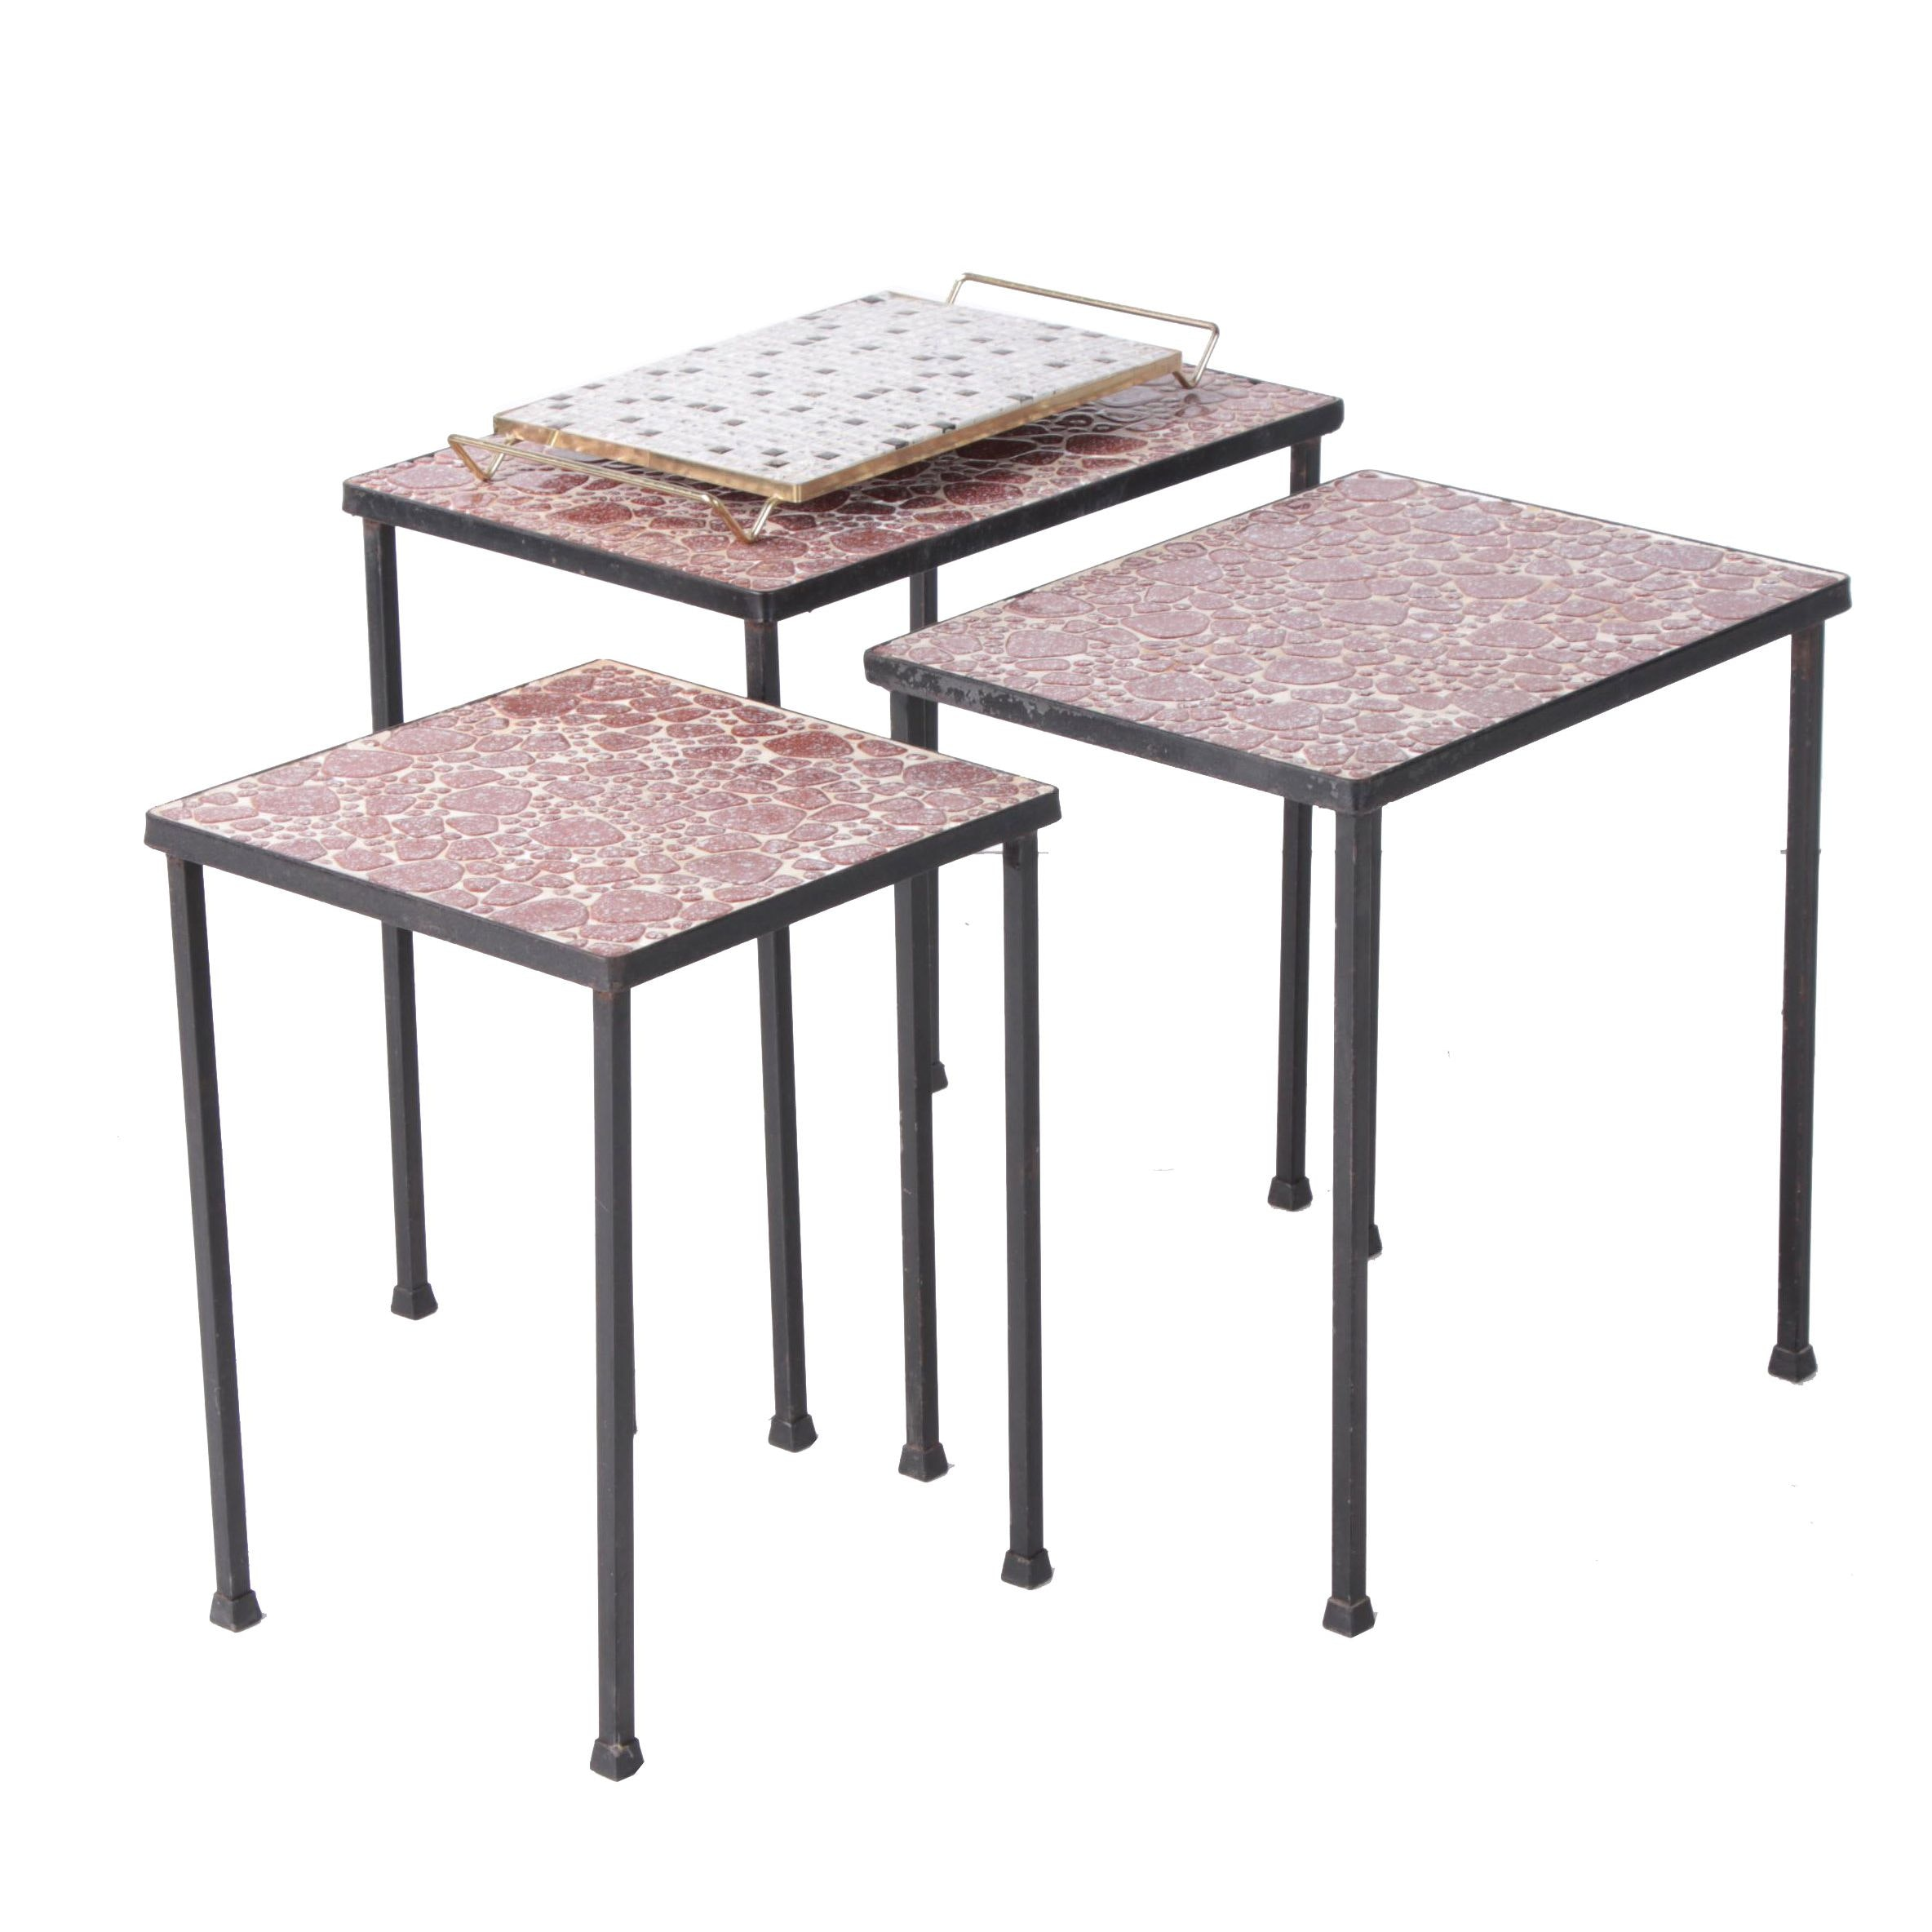 Modern Ceramic Mosaic Topped Nesting Tables and Tray, Mid 20th Century